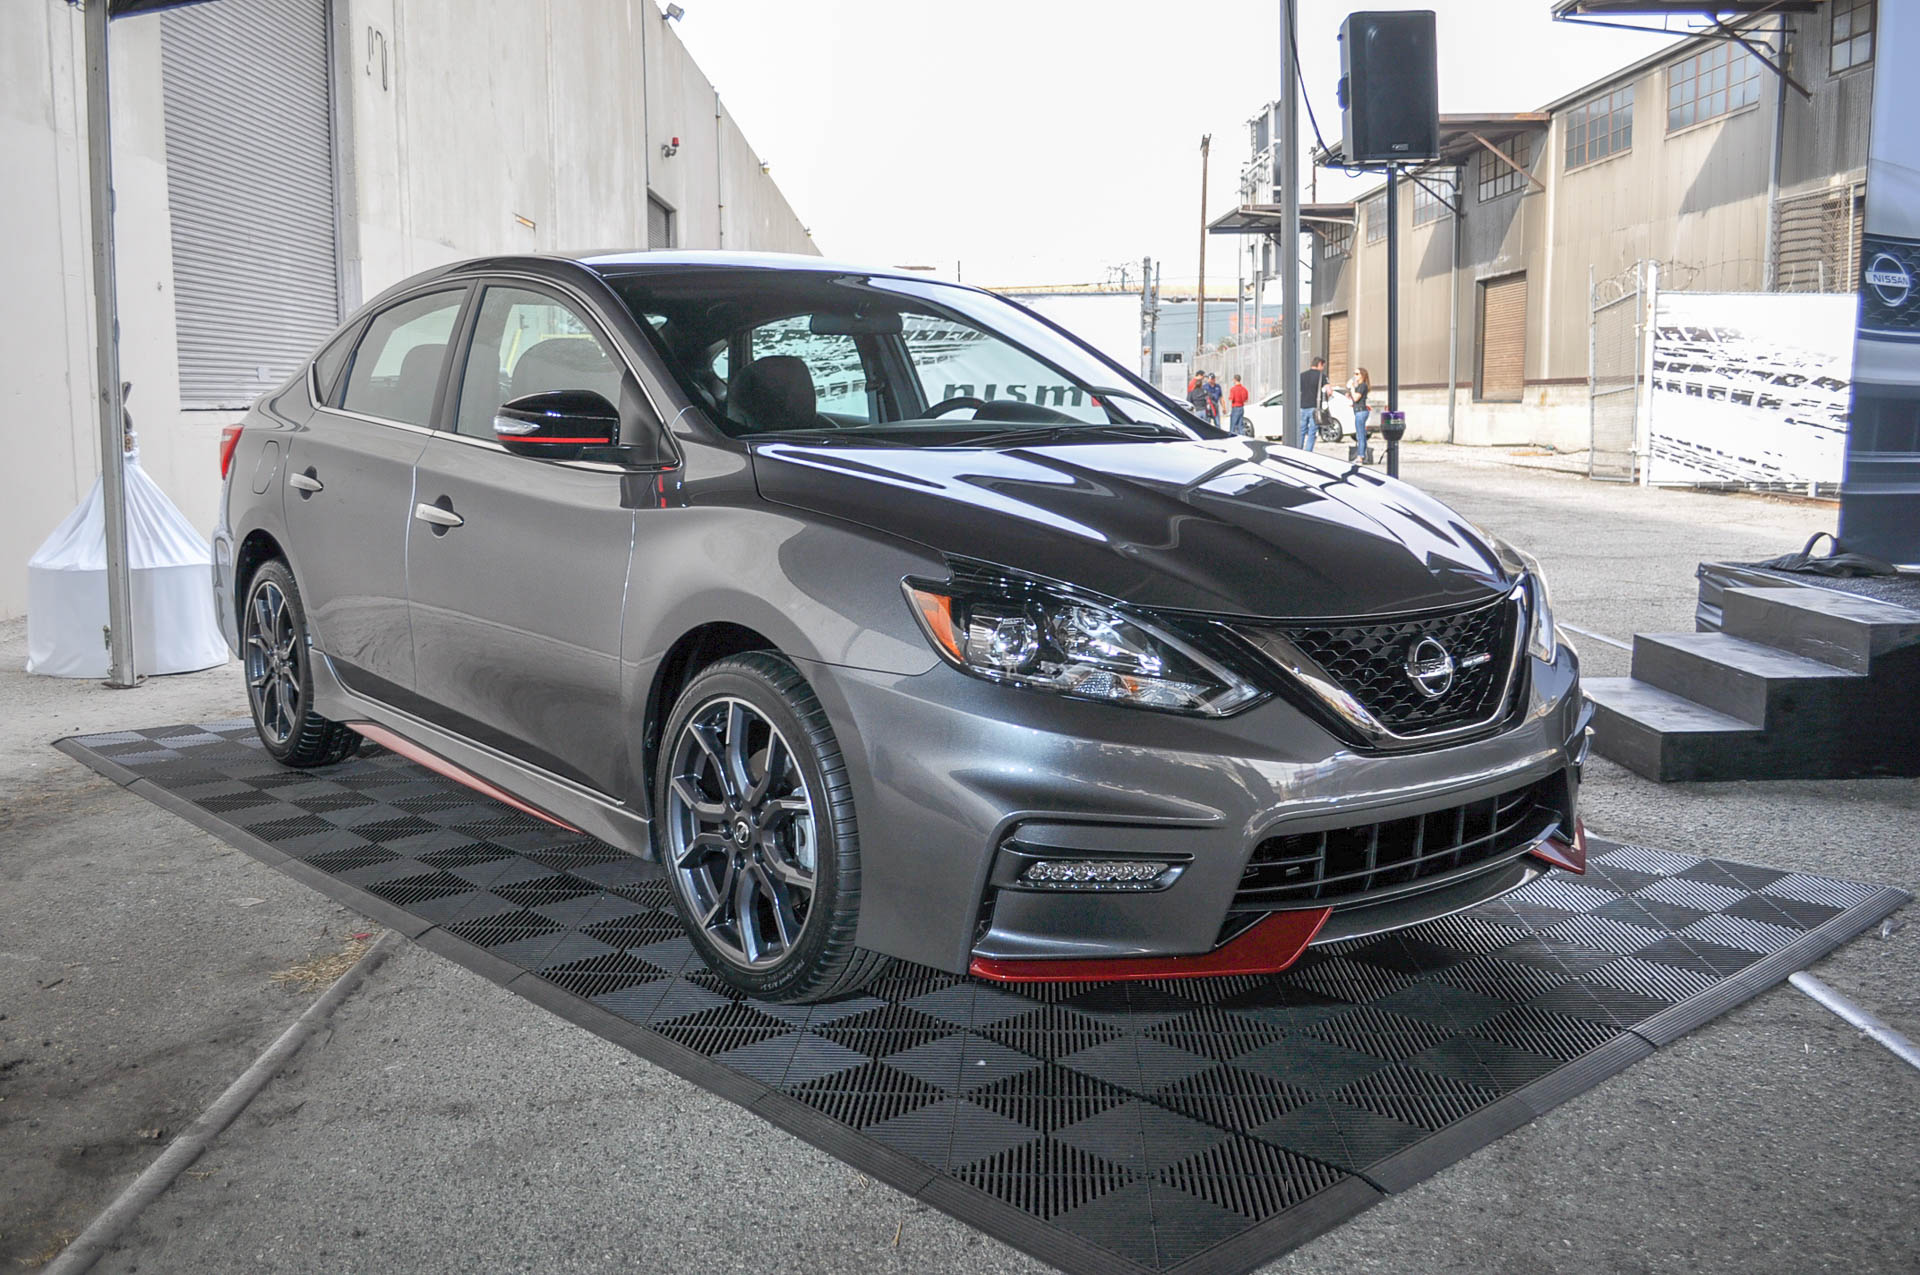 2017 Nissan Sentra Nismo Revealed At 2016 La Auto Show